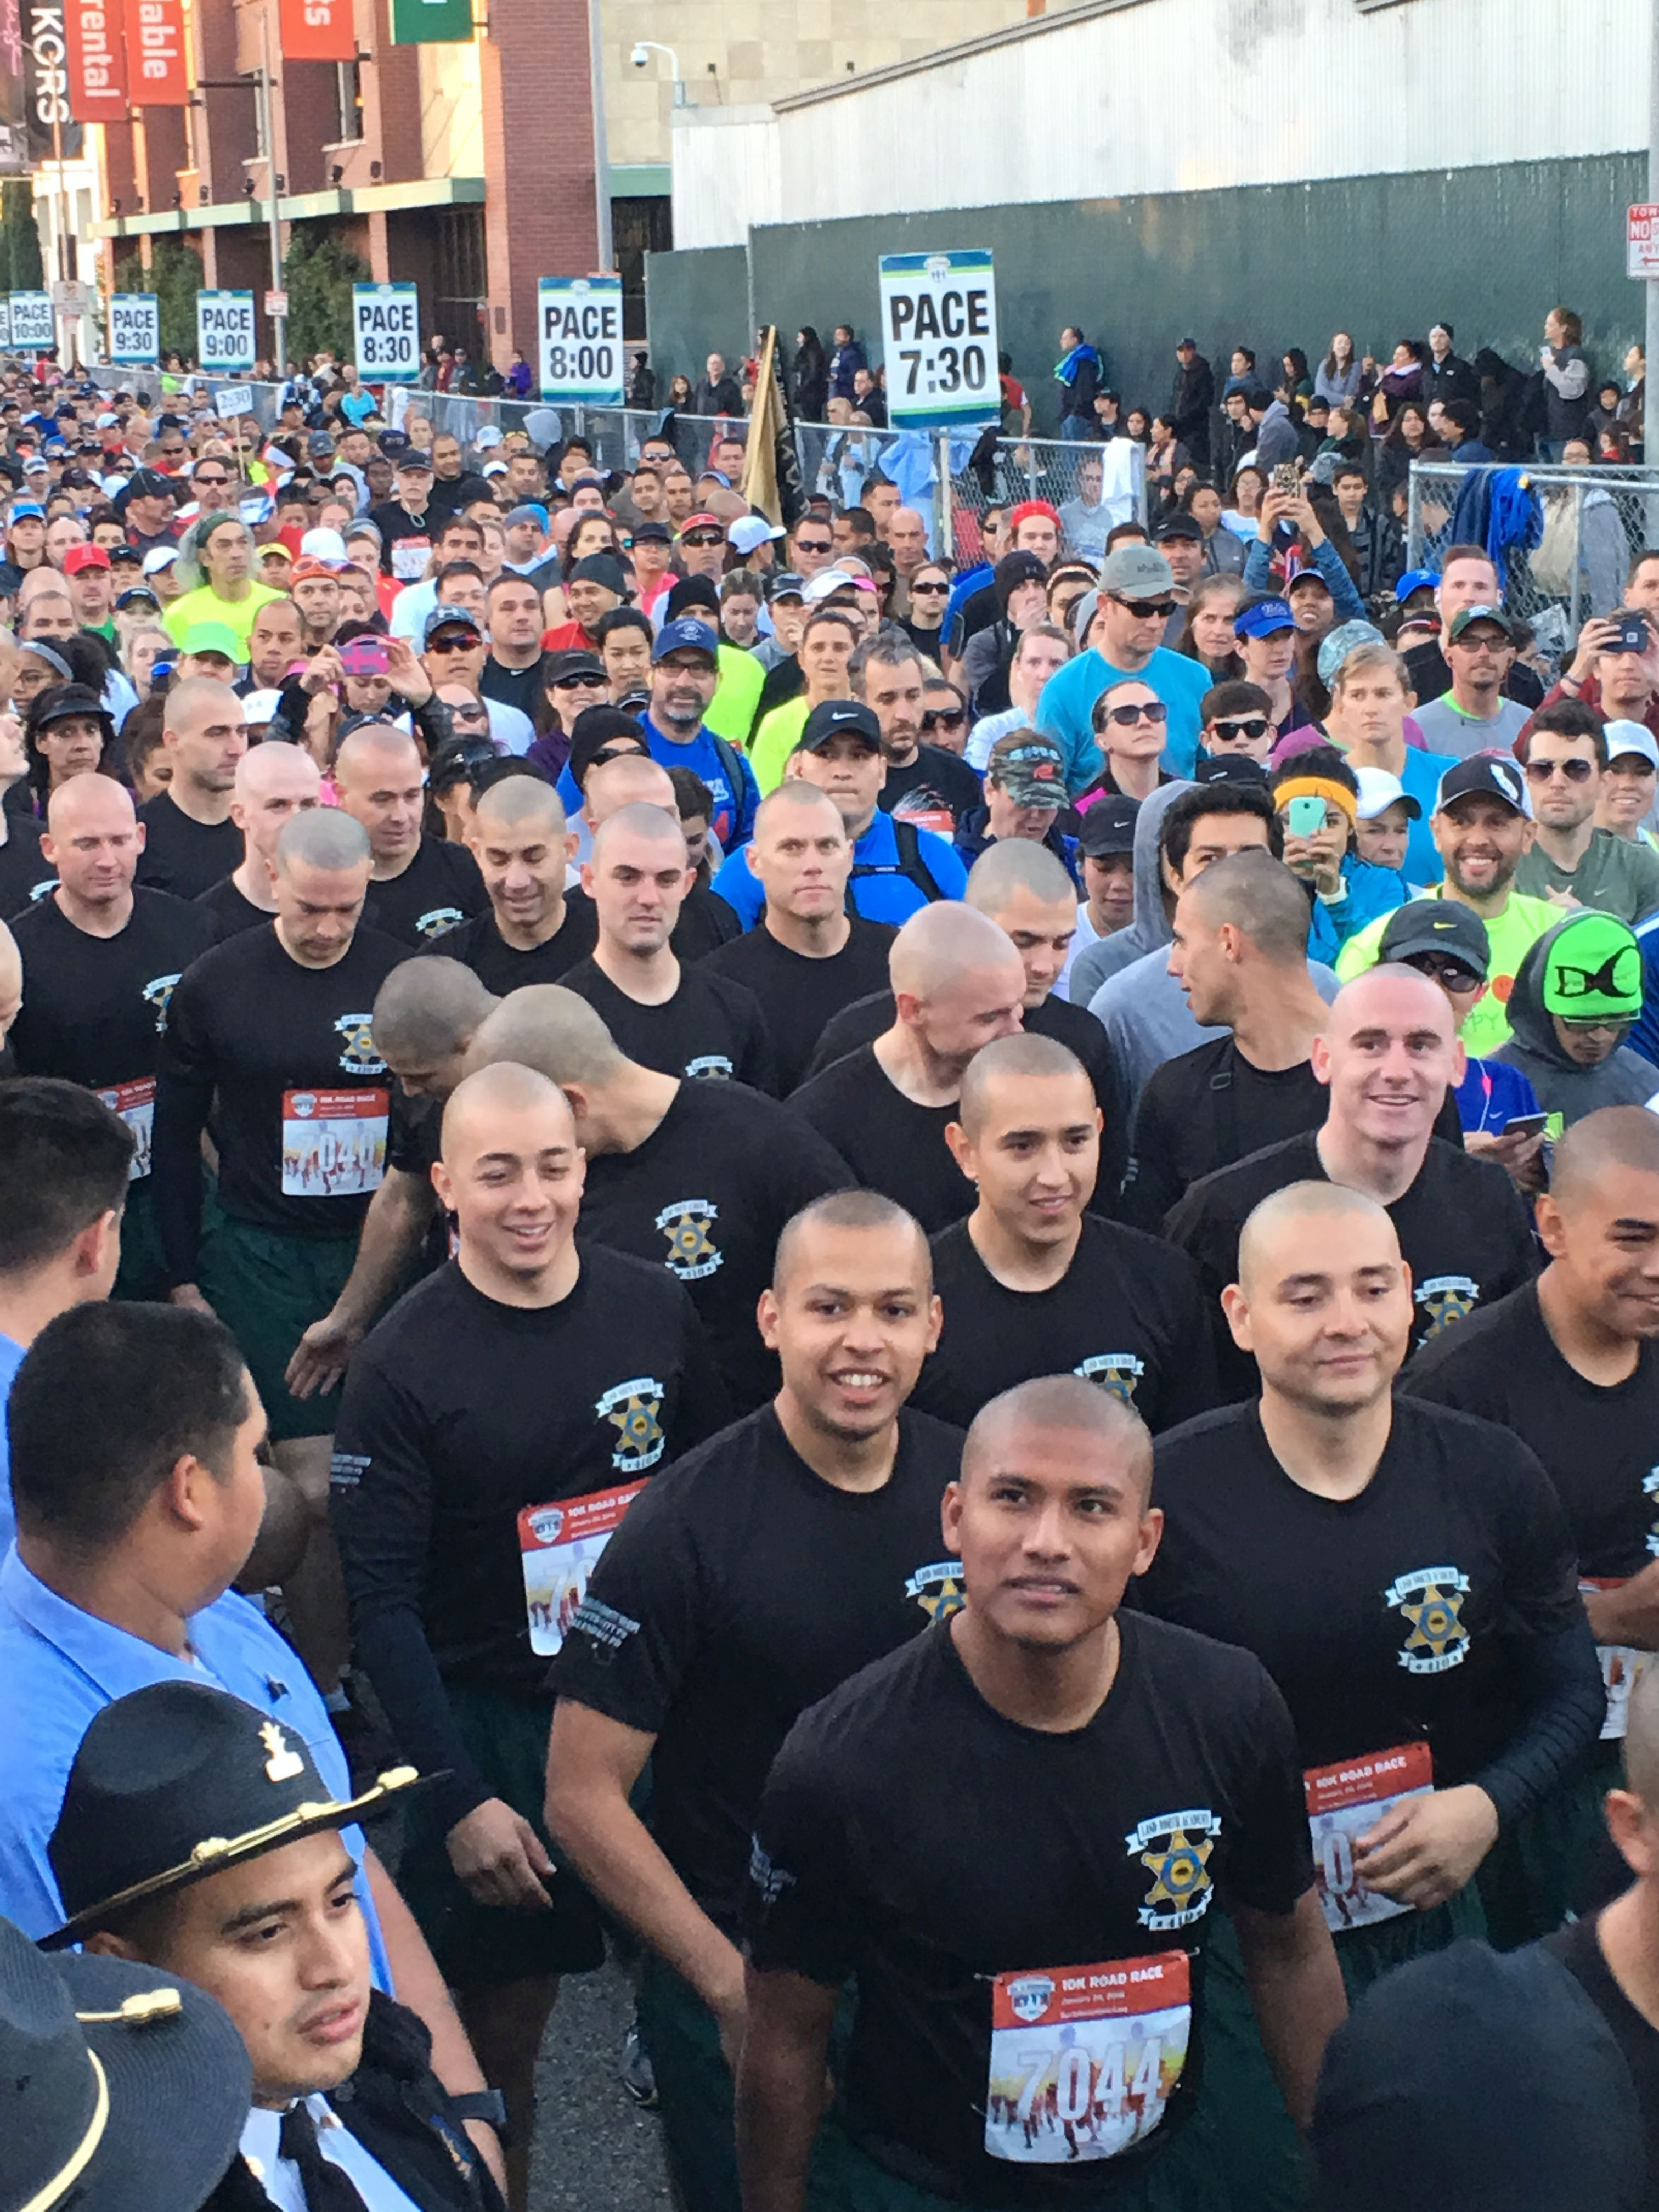 Run To Remember L.A. Event to Honor Fallen Officers, Raise Money for Charity